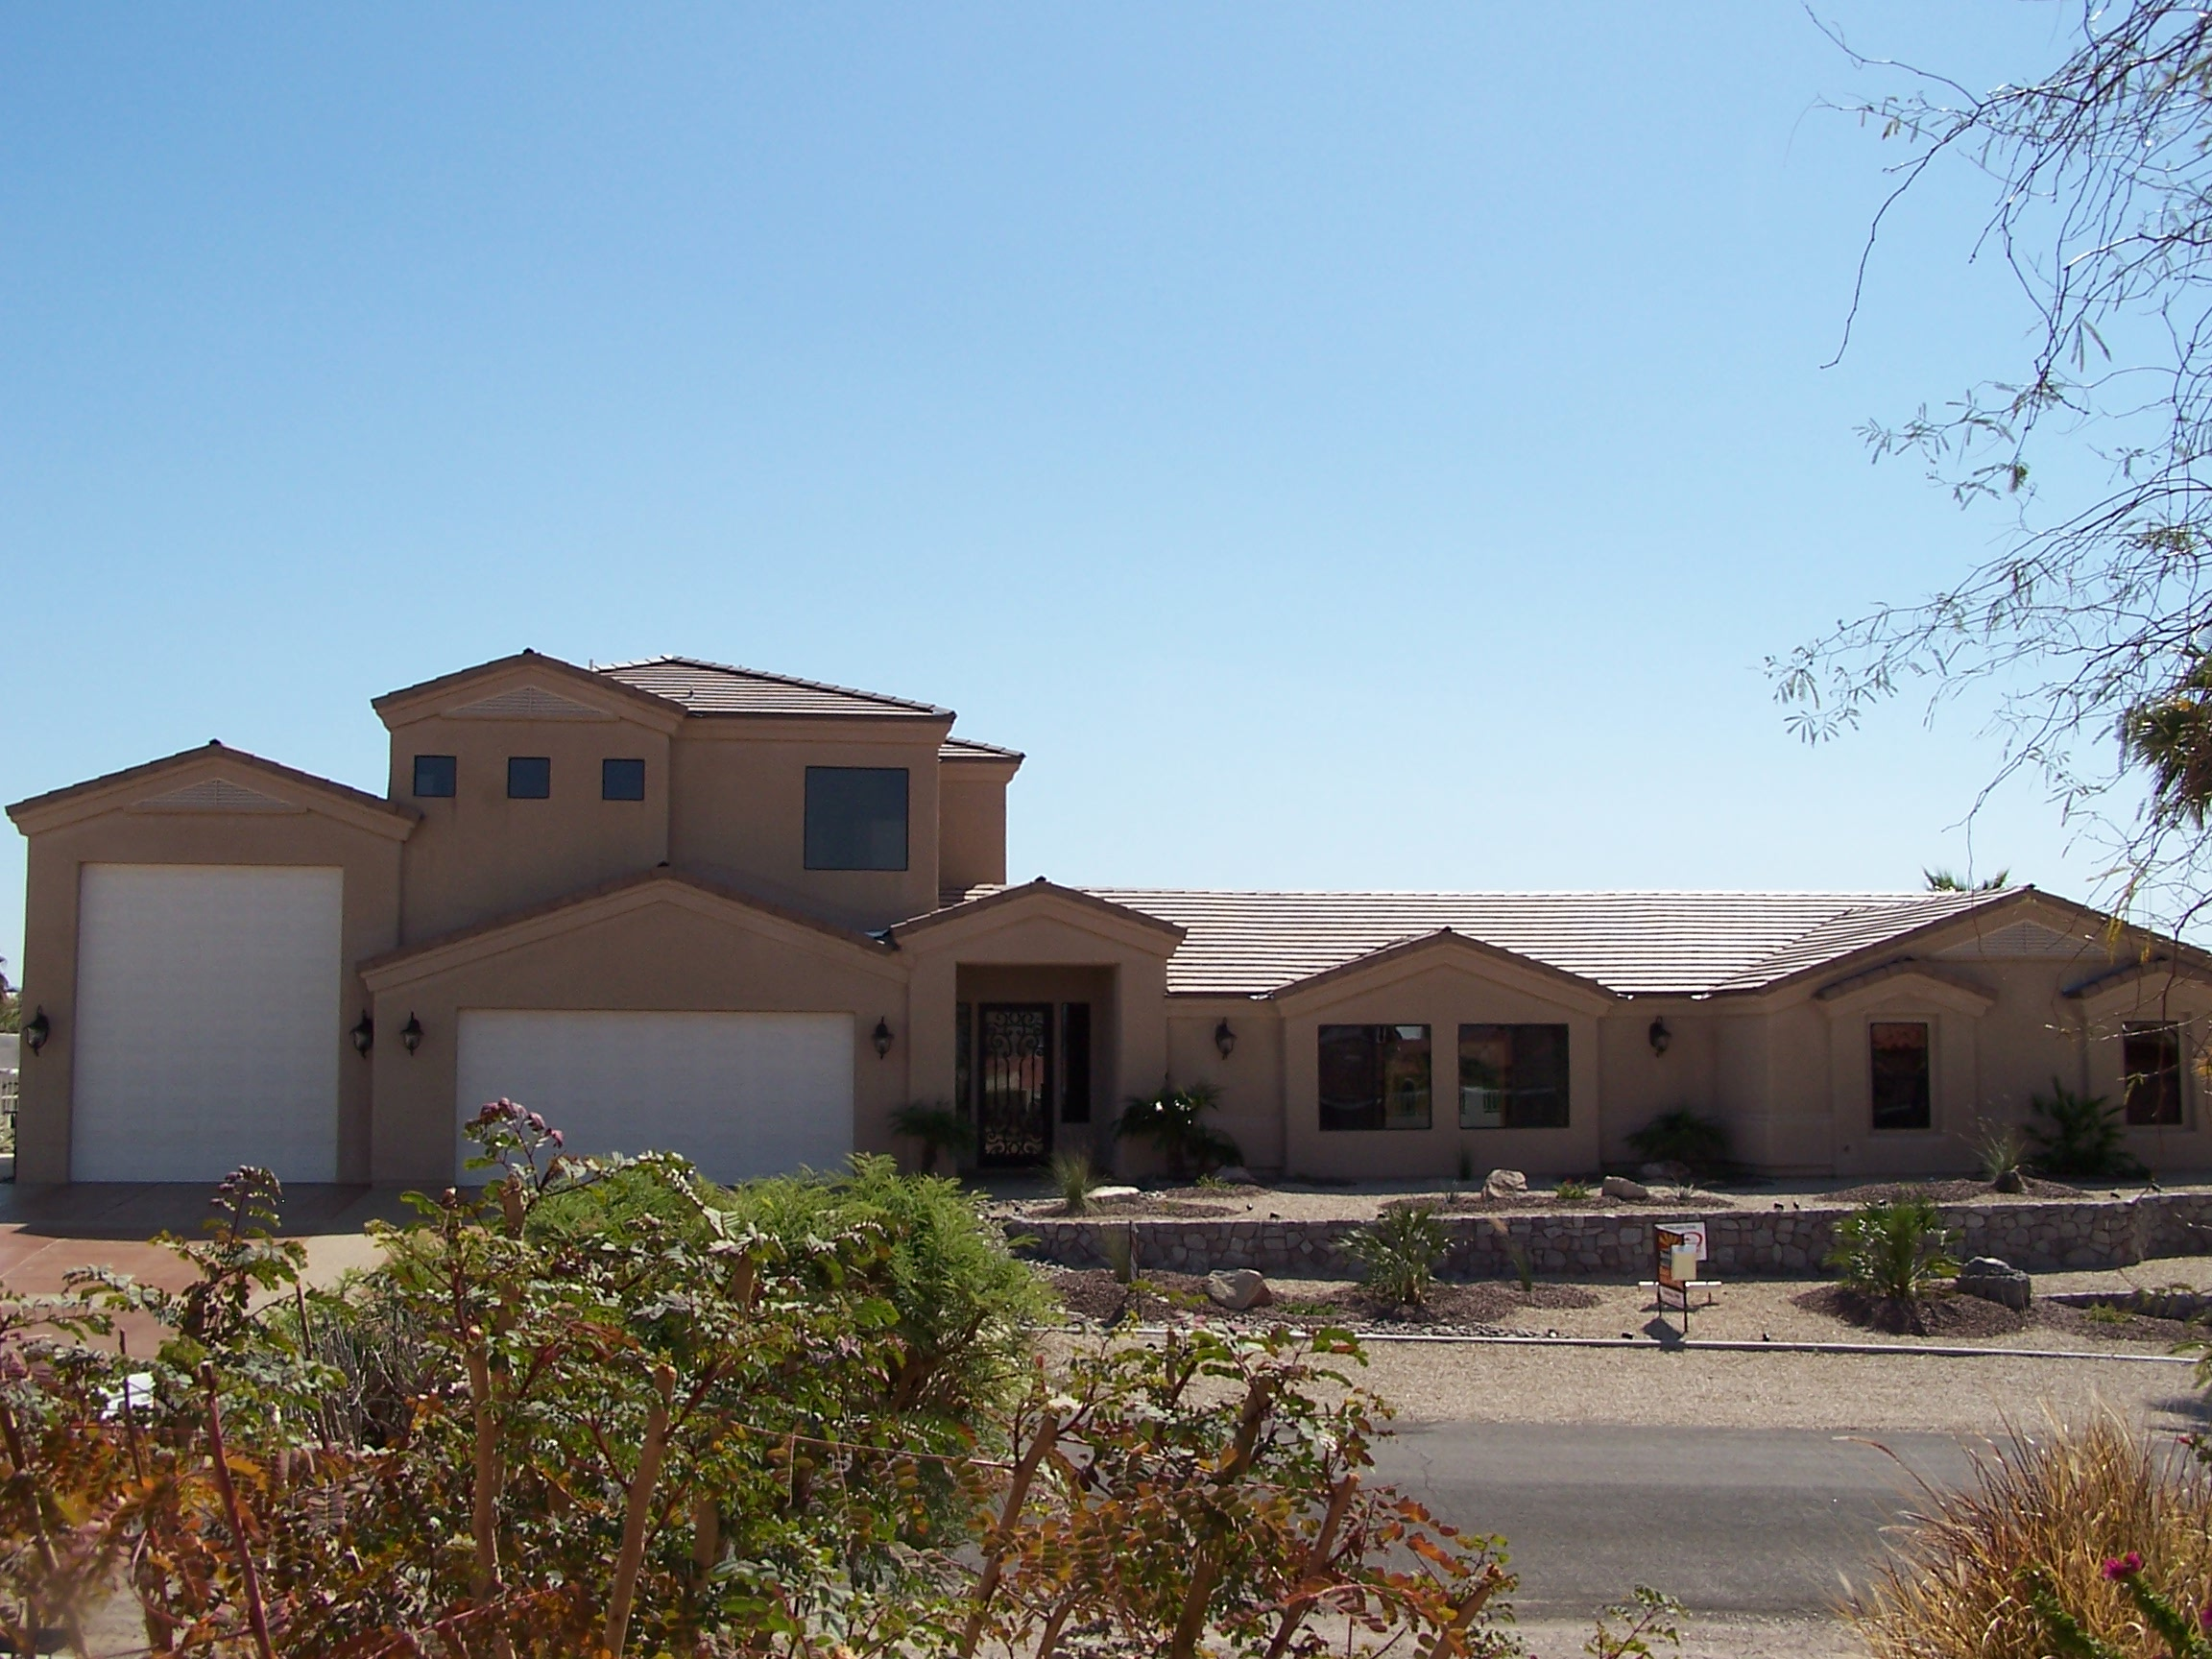 Architectural Drafting Services in Lake Havasu City